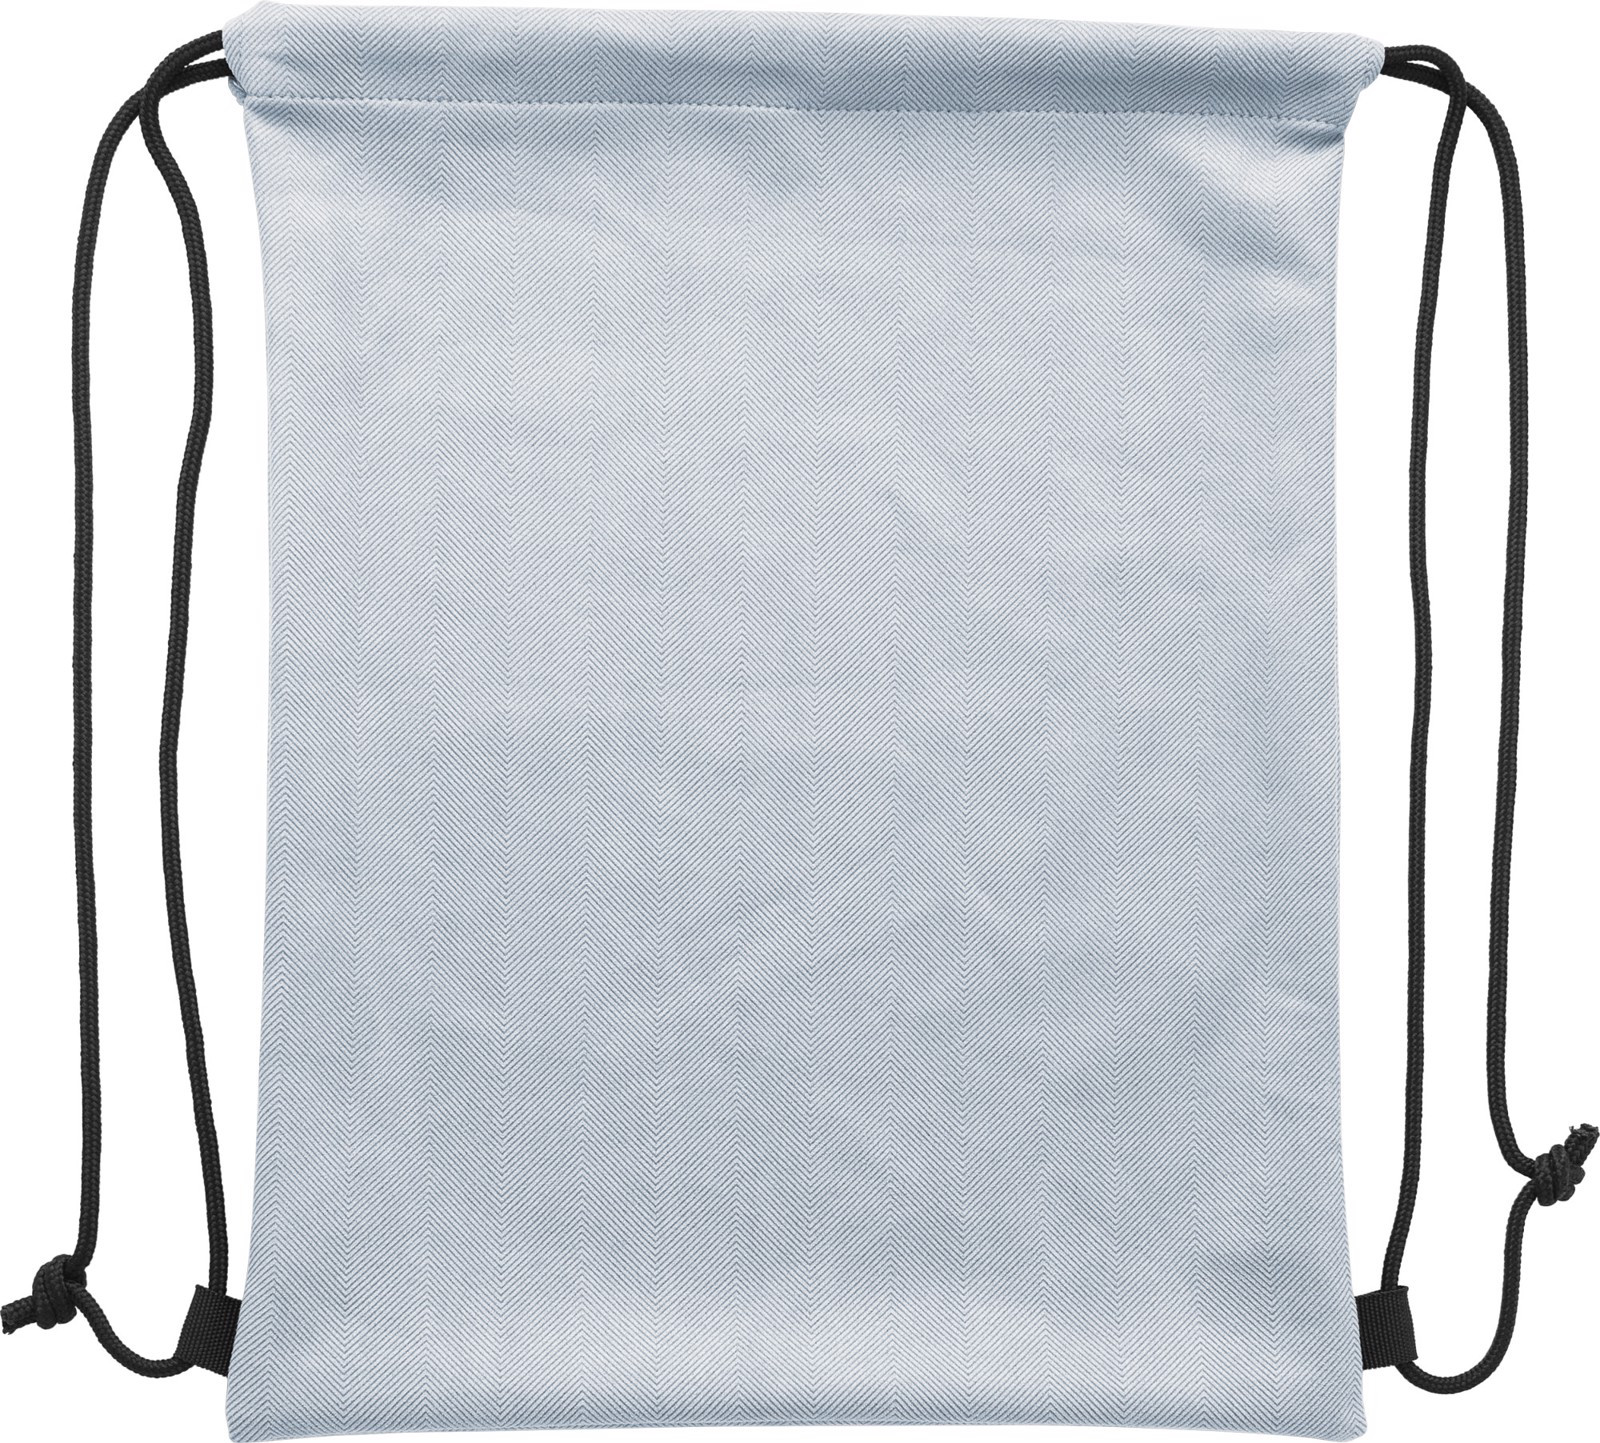 Polyester (210D) drawstring backpack - Silver